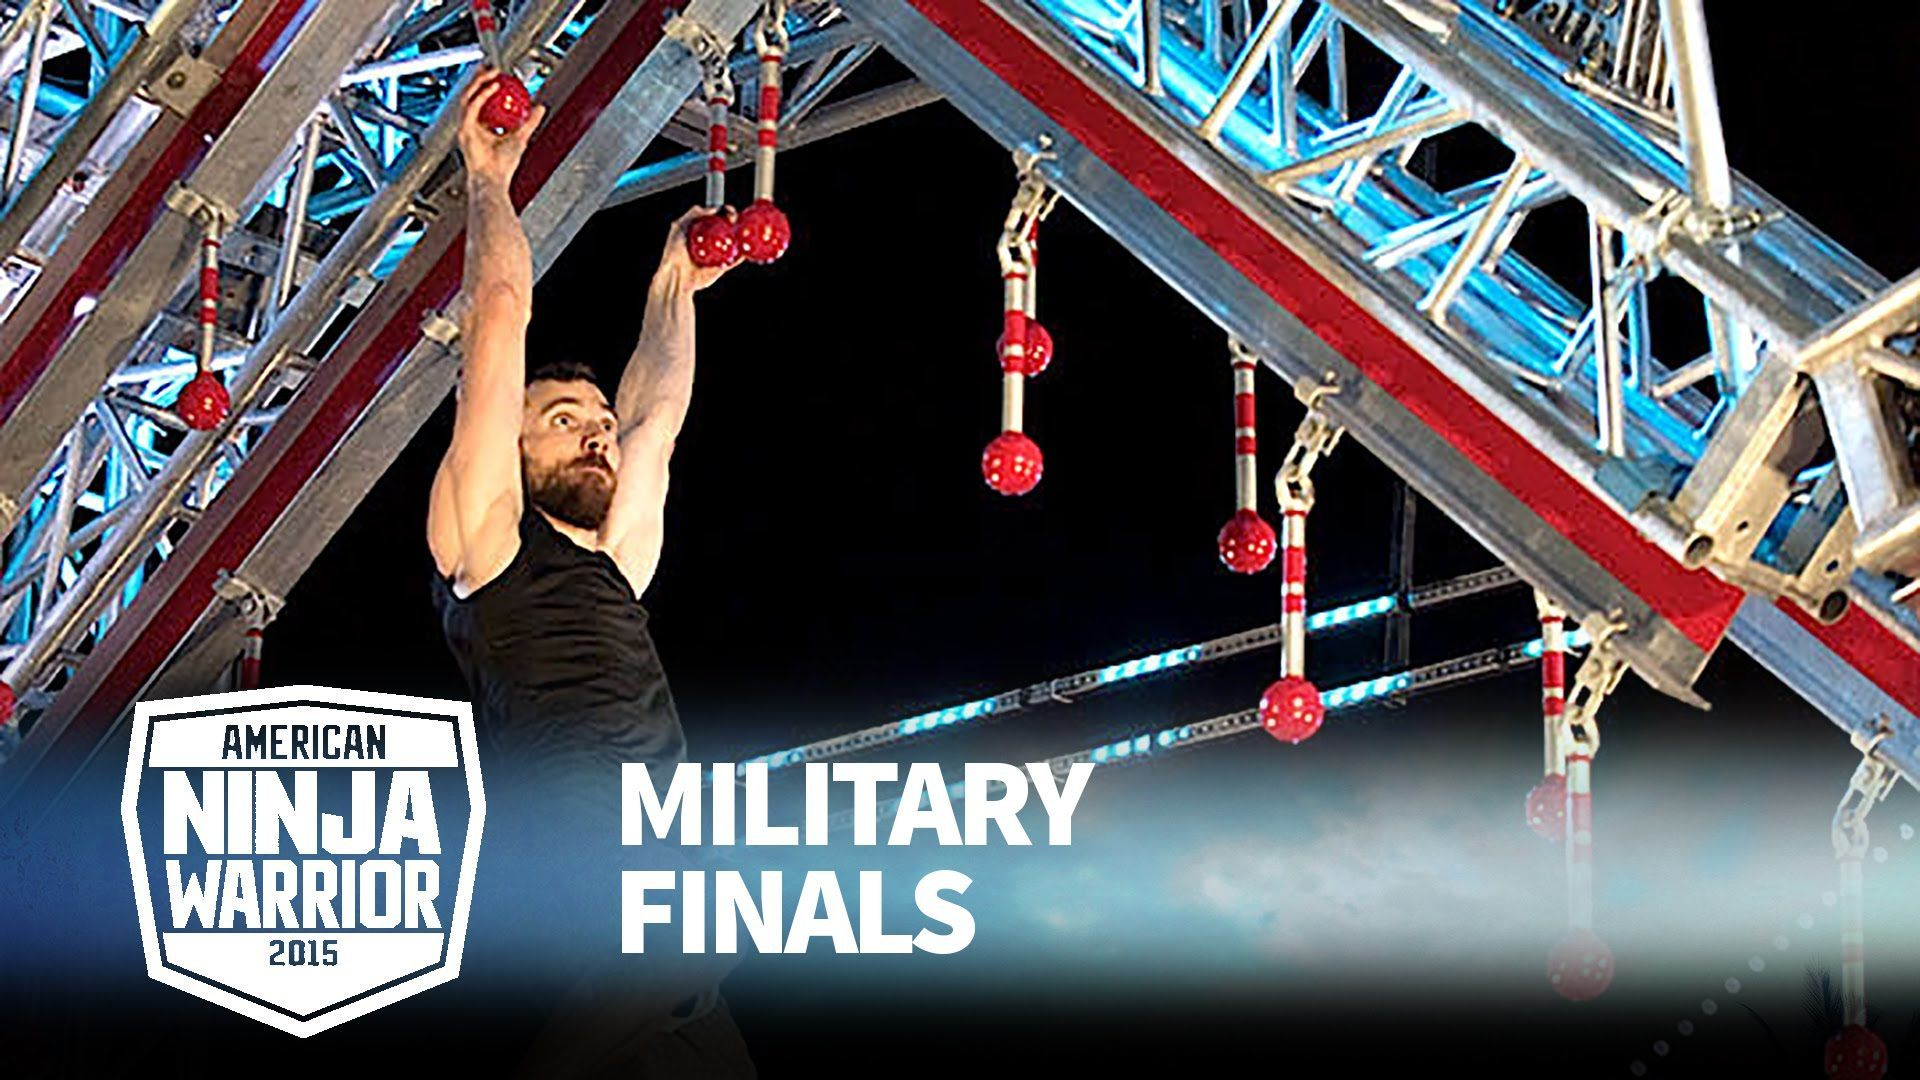 american ninja warrior military finals recap 2015 images